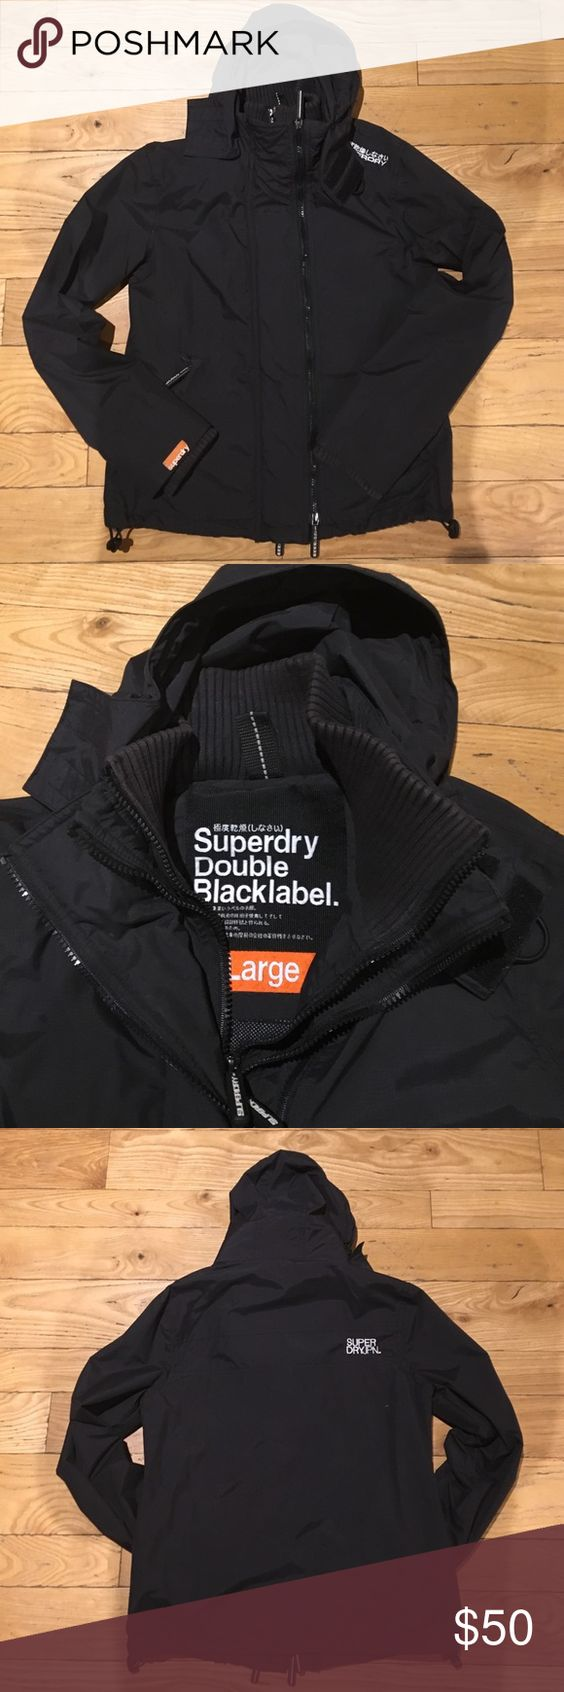 Superdry Double Black Label windcheater jacket Like new condition, lightweight, waterproof, windproof jacket. Superdry Jackets & Coats